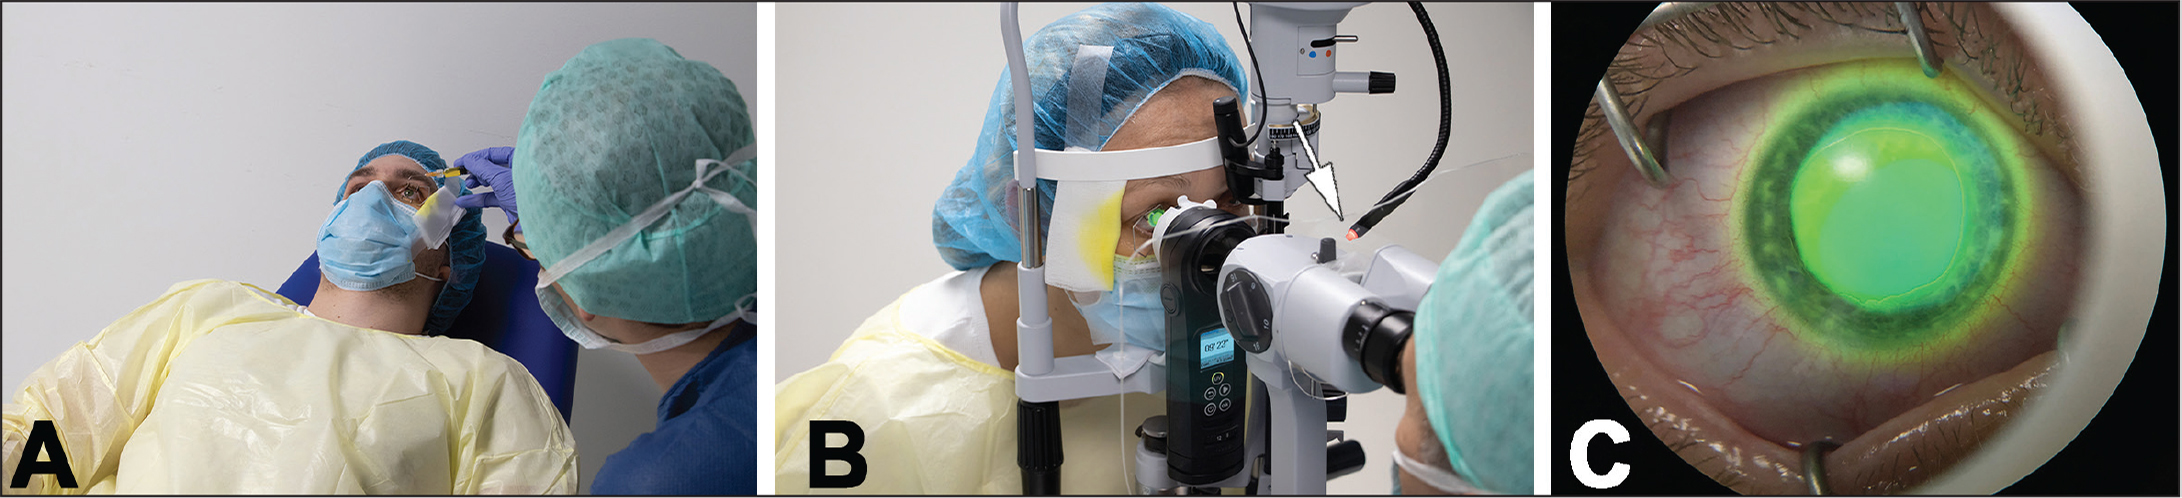 Riboflavin instillation and ultraviolet-A (UVA) irradiation. (A) Riboflavin instillation is performed in a reclining chair, applying riboflavin every 2 minutes for 10 minutes. (B) UVA irradiation of the selected eye. Steady fixation is facilitated by presenting a red fixation target to the untreated eye (arrow). (C) Surgeon view of the irradiation zone through the ocular lens of the slit lamp. Corneal cross-linking was performed with all parties wearing personal protective equipment per local legislation enacted to prevent the spread of severe acute respiratory syndrome coronavirus 2 (SARS-CoV-2) in medical facilities.